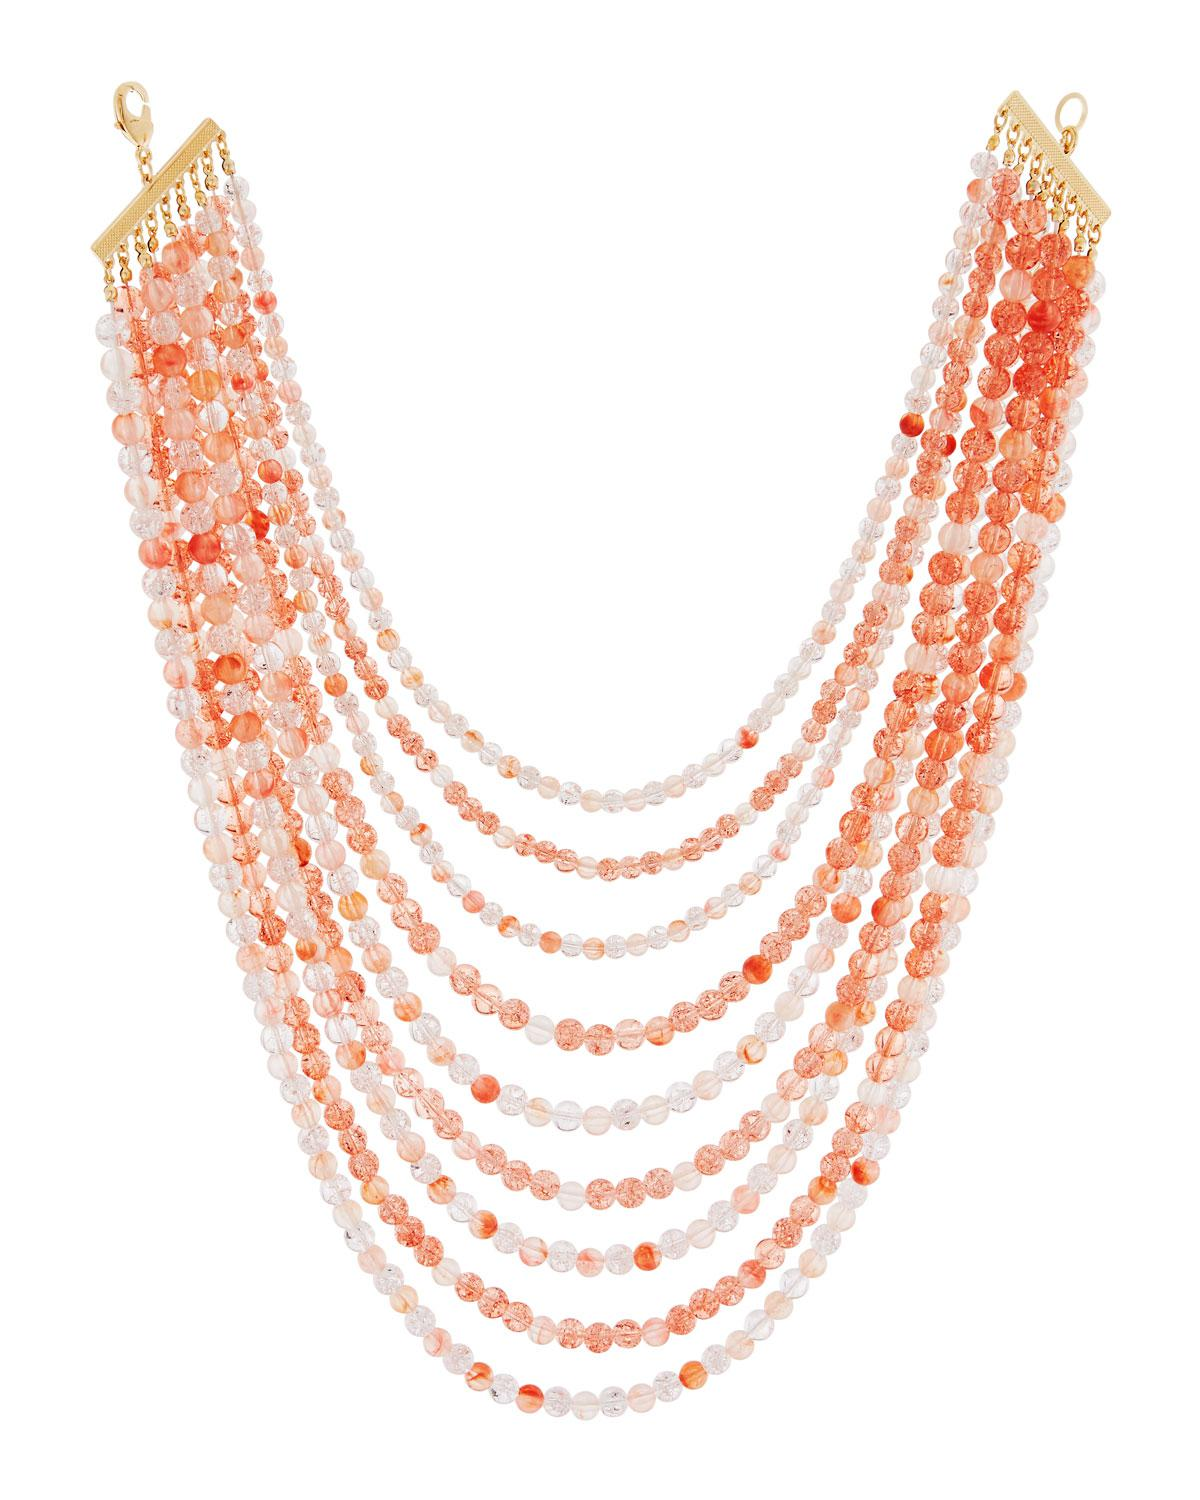 Lydell Nyc Short Multi-Row Semiprecious Beaded Necklace vH7PT5VZw